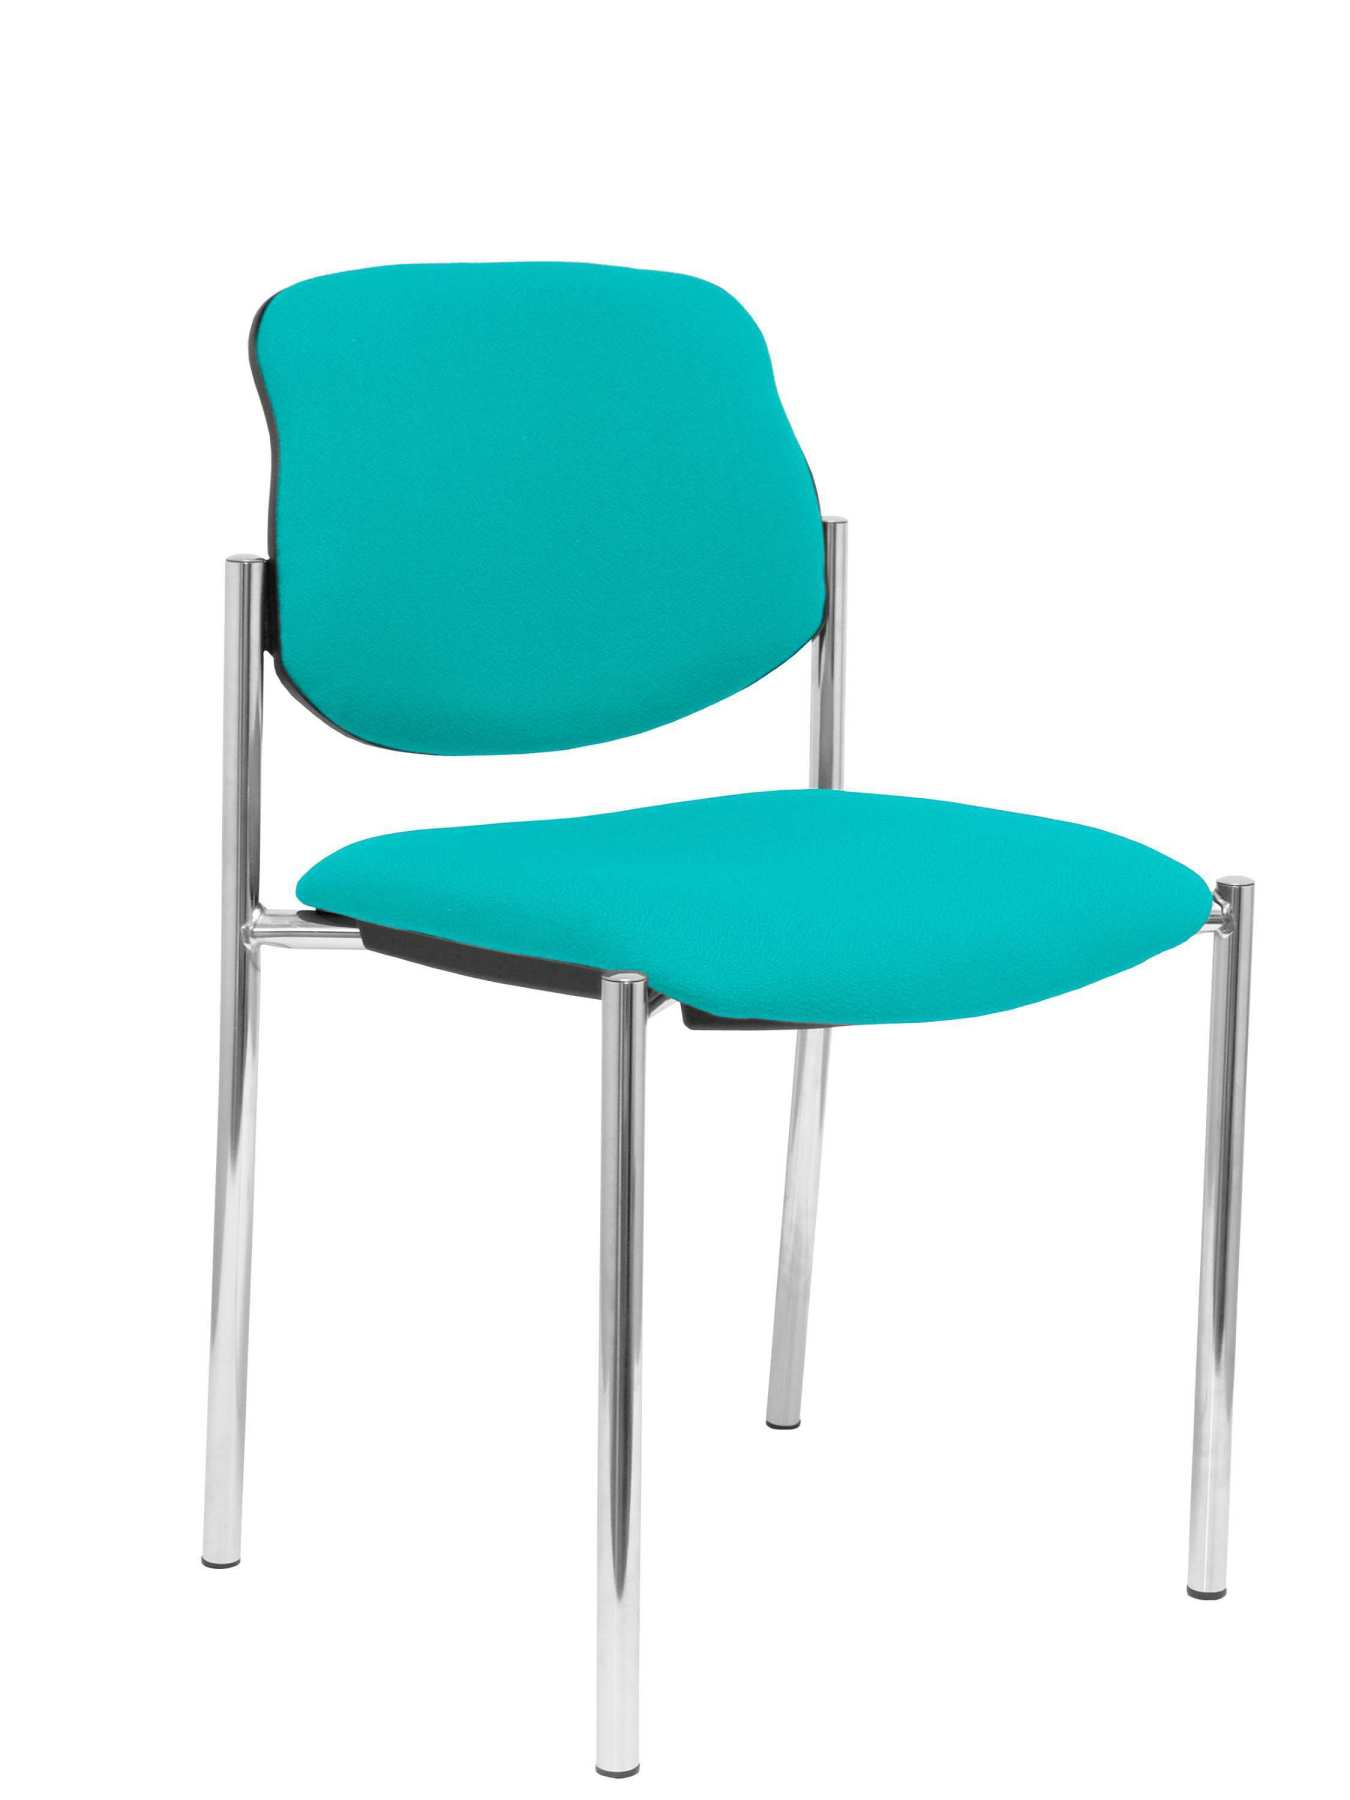 Confident Chair 4-leg And Estructrua Chrome Seat And Back Upholstered In Fabric BALI Green PIQUERAS And CR